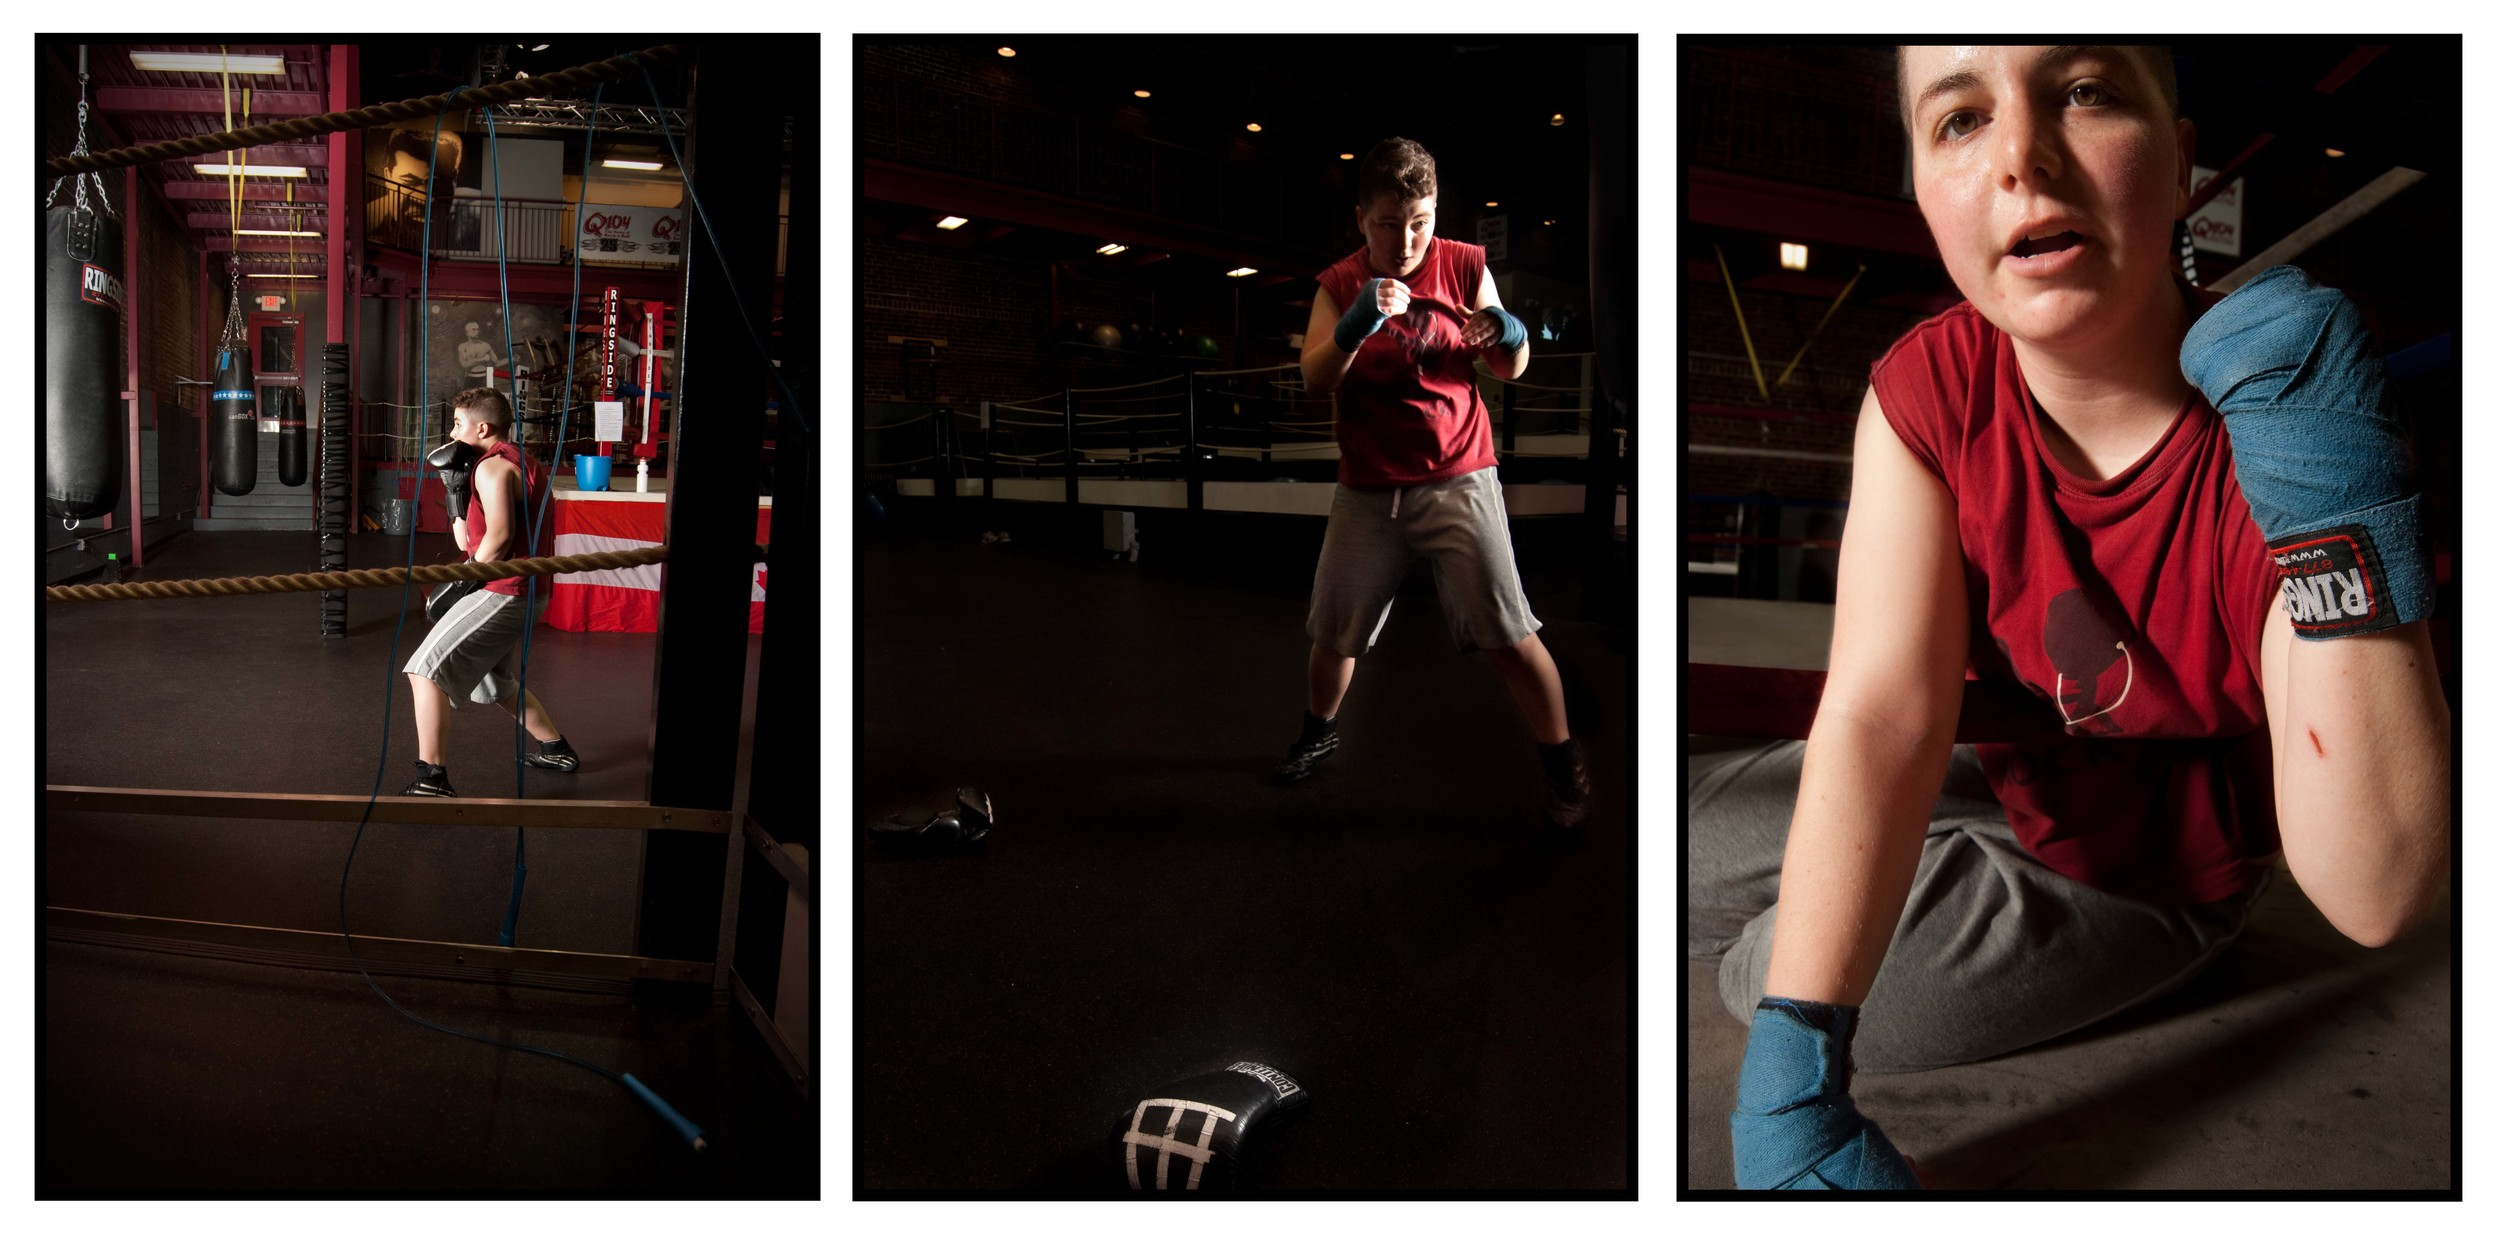 """I began going boxing with the intention of staying in shape during the rugby off season. Soon, however, boxing evolved into something much more important to me. As a trans person who previously struggled with body dysphoria, I was often unsure of how to relate to my body in a positive way, and I sometimes even felt that my body was useless. Boxing helped me combat those feelings.  I began to realize that there are positive things about my body, and that it can do great things. Instead of trying to force my body to emulate that of a non-trans person's, I was able to re-intepret it as a fighter's body. Boxing helped alleviate my primary dysphoria issues. A boxer's hands are very important - more so than their genitalia - and I was able to put value to my hands and my other, non-sexual body parts."""